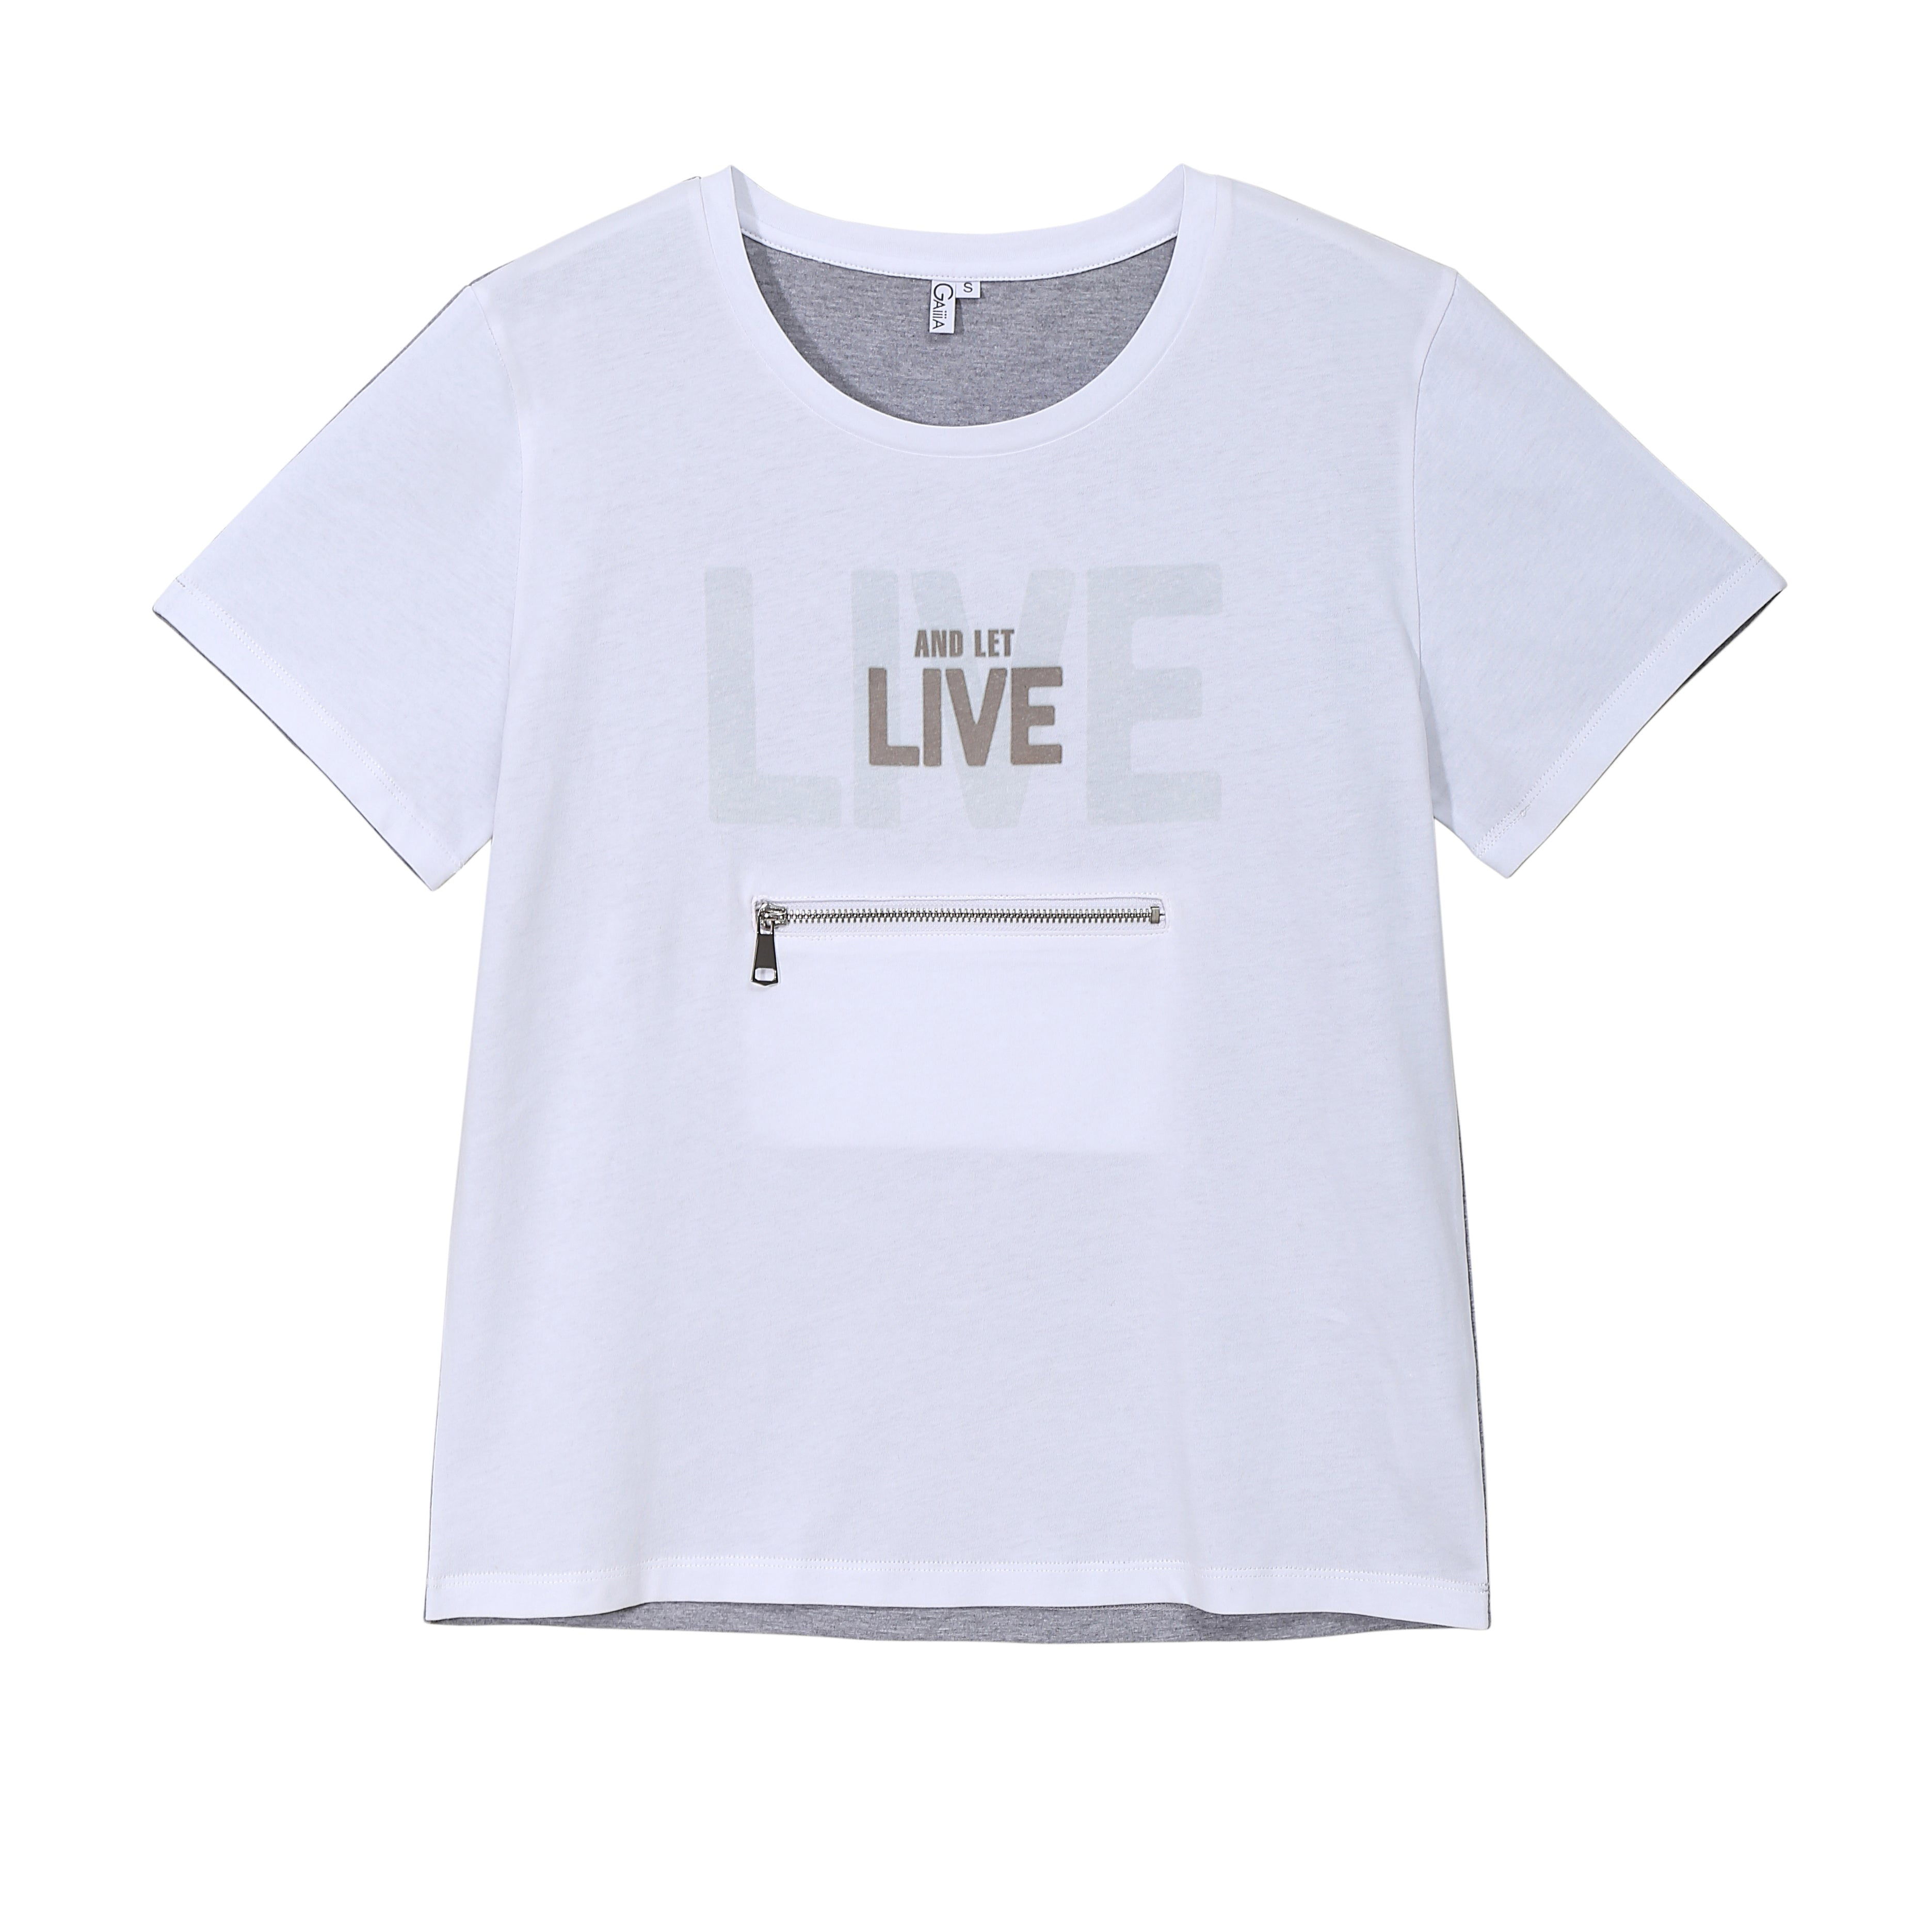 LIVE AND LET LIVE TEE (LIGHT)